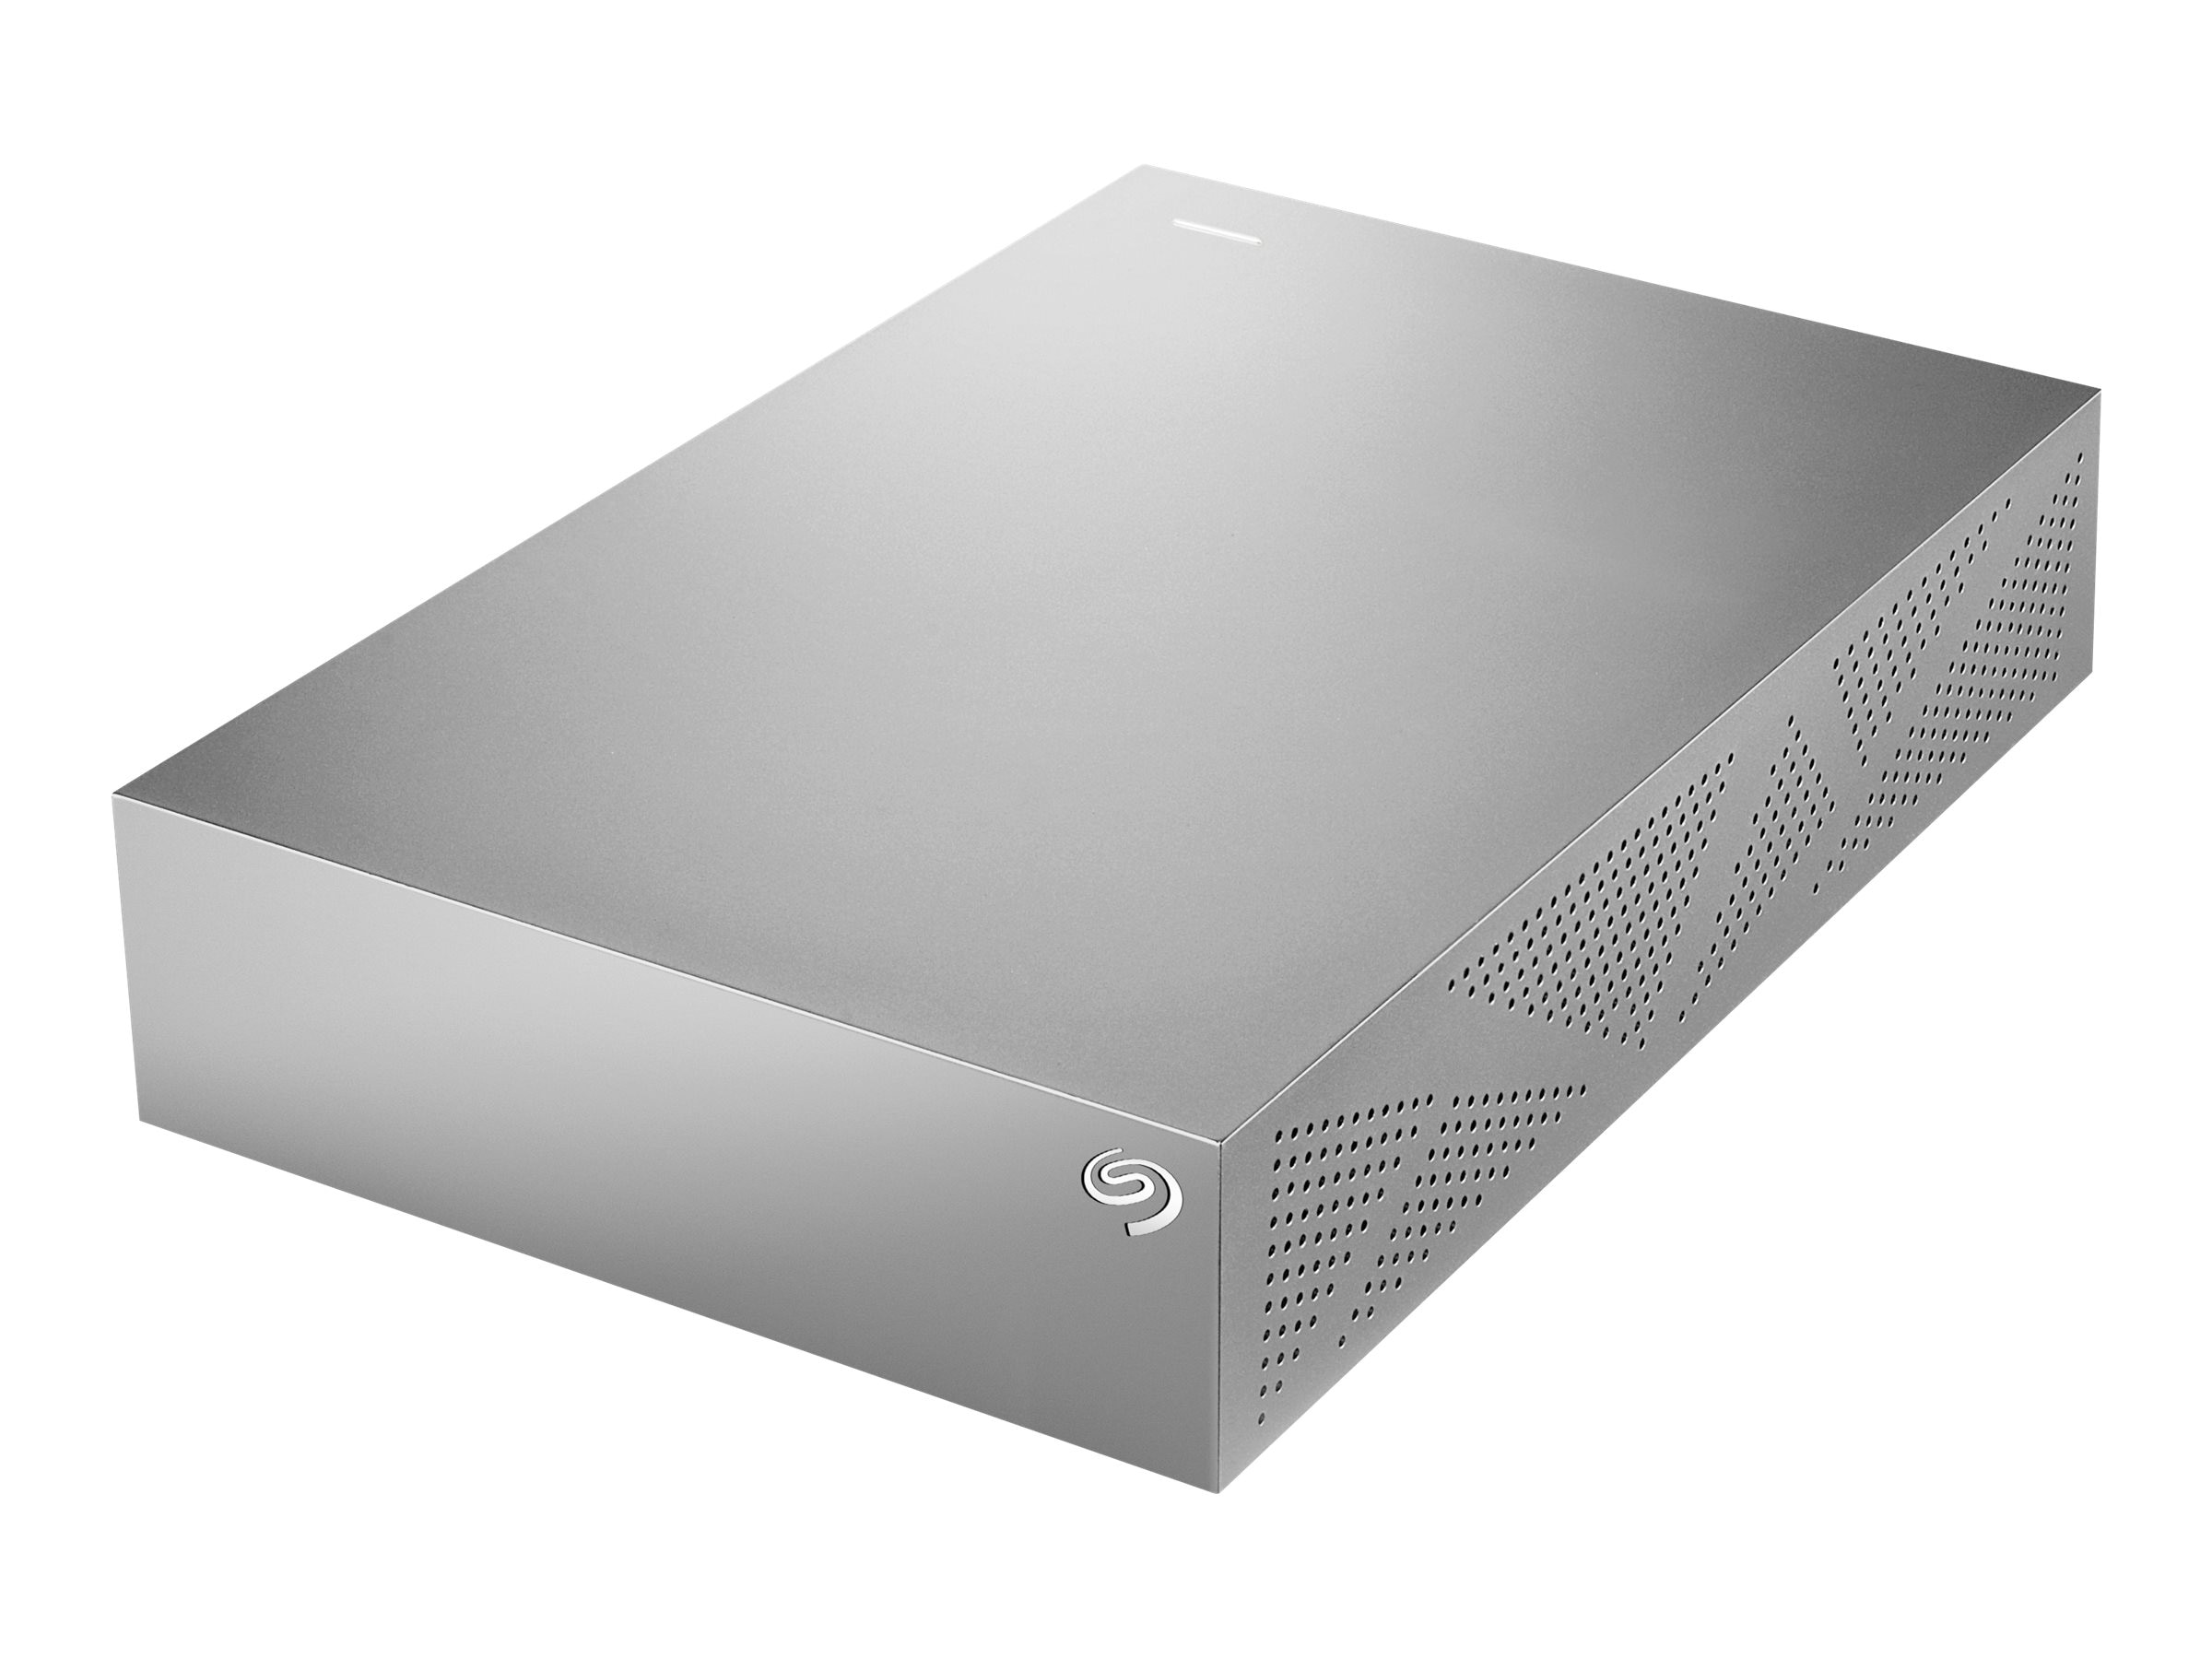 Seagate 4TB Backup Plus for Mac USB 3.0 3.5 Desktop Hard Drive - Titanium Silver